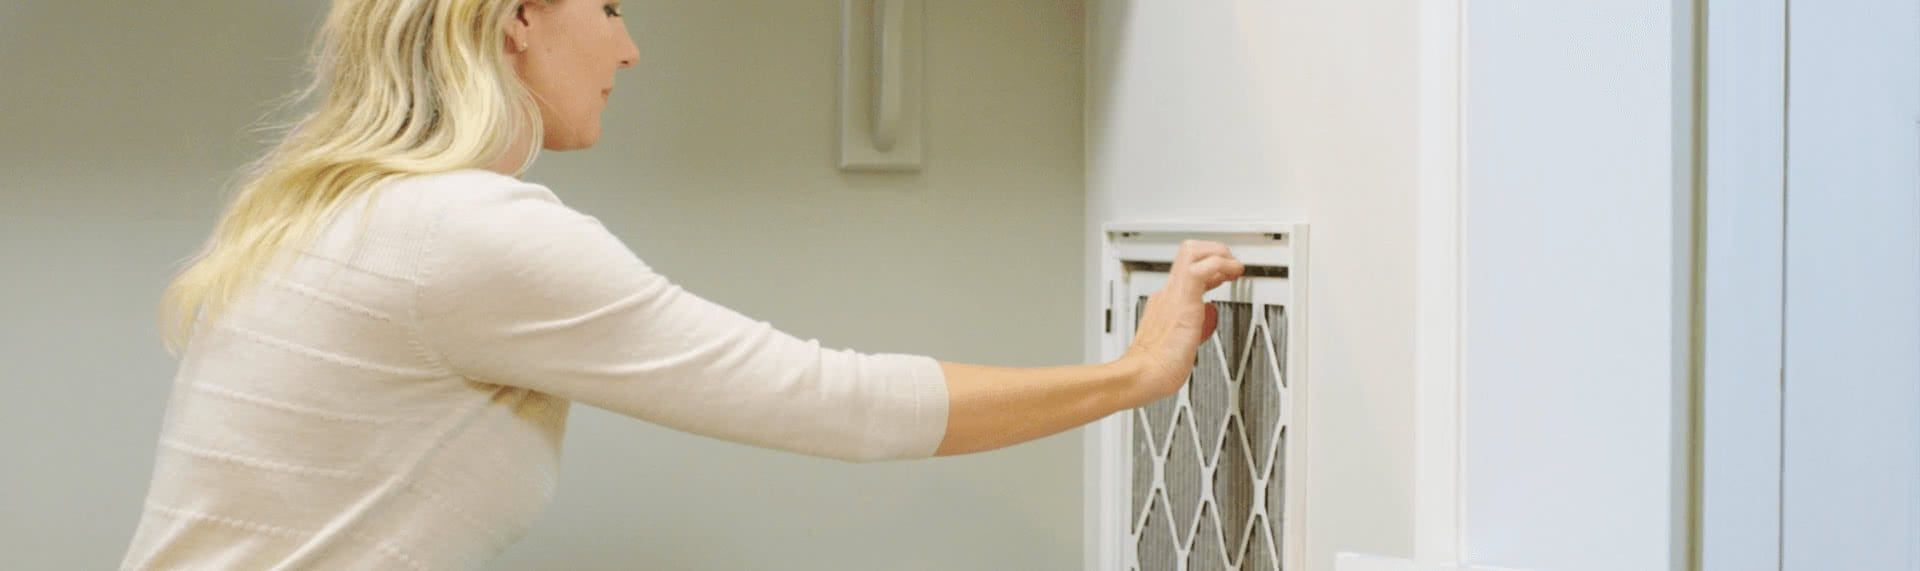 replace your air filters to save on energy